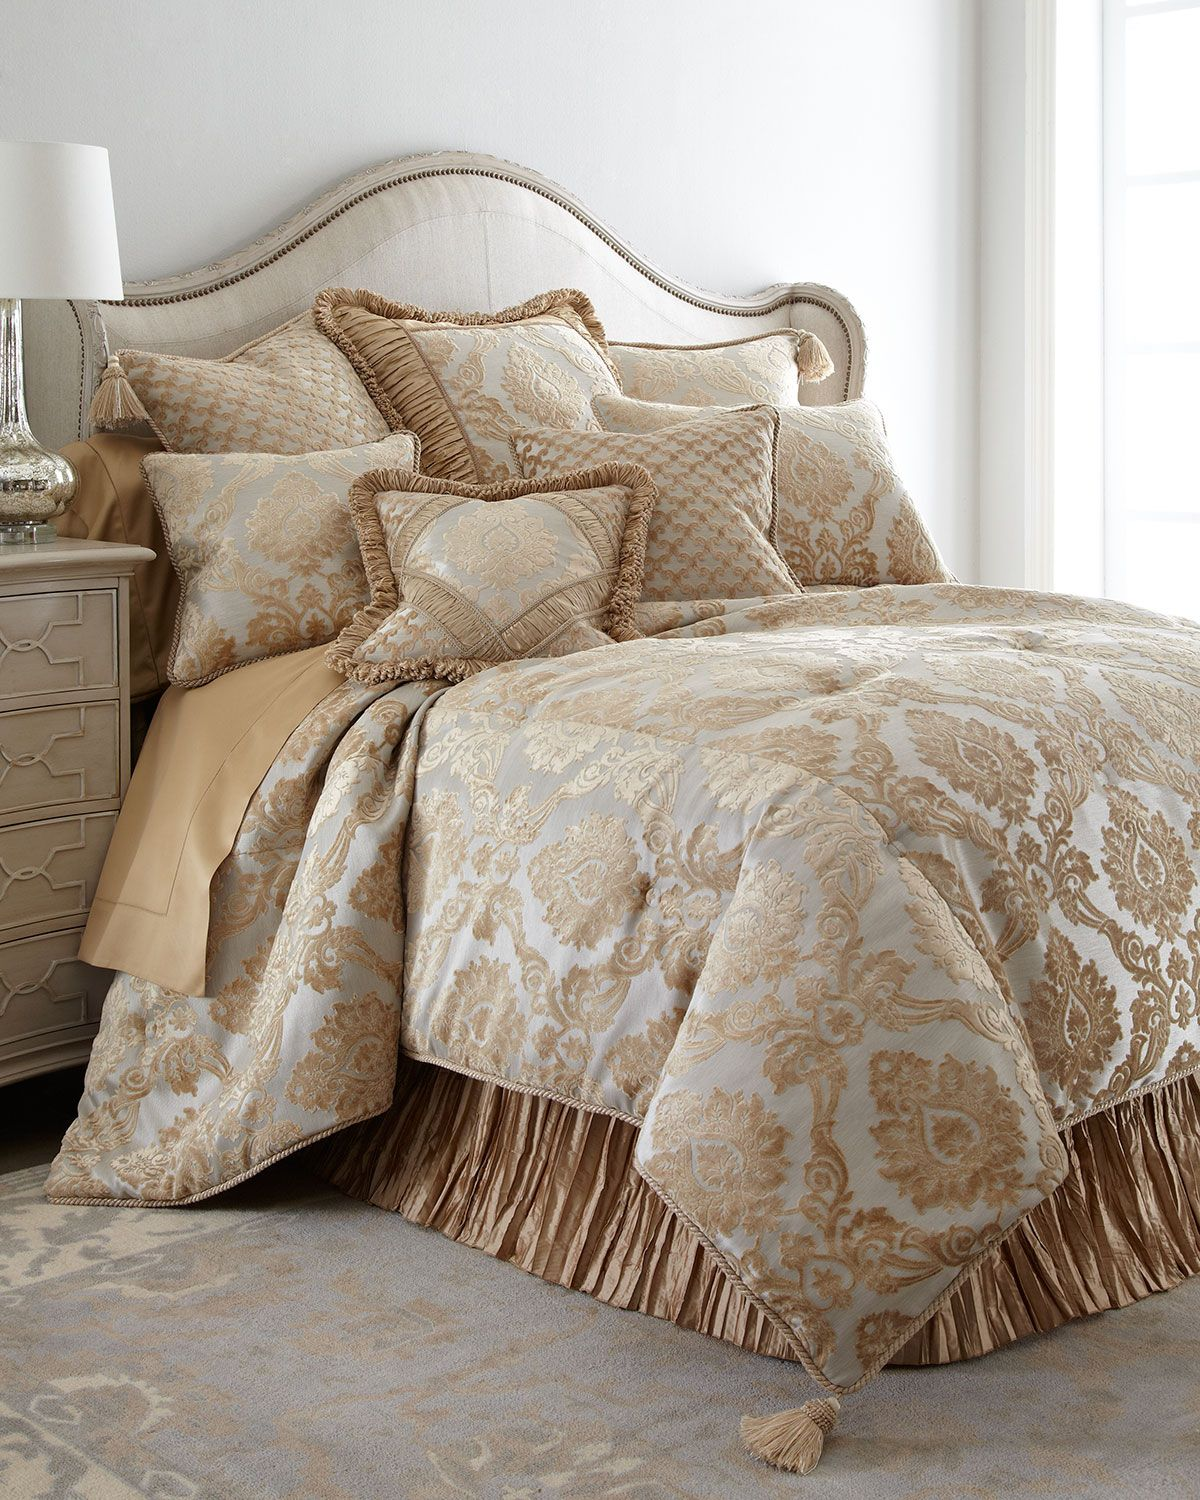 Bedding jardin collection bedding collections bed amp bath macy s - Allure King Comforter Set